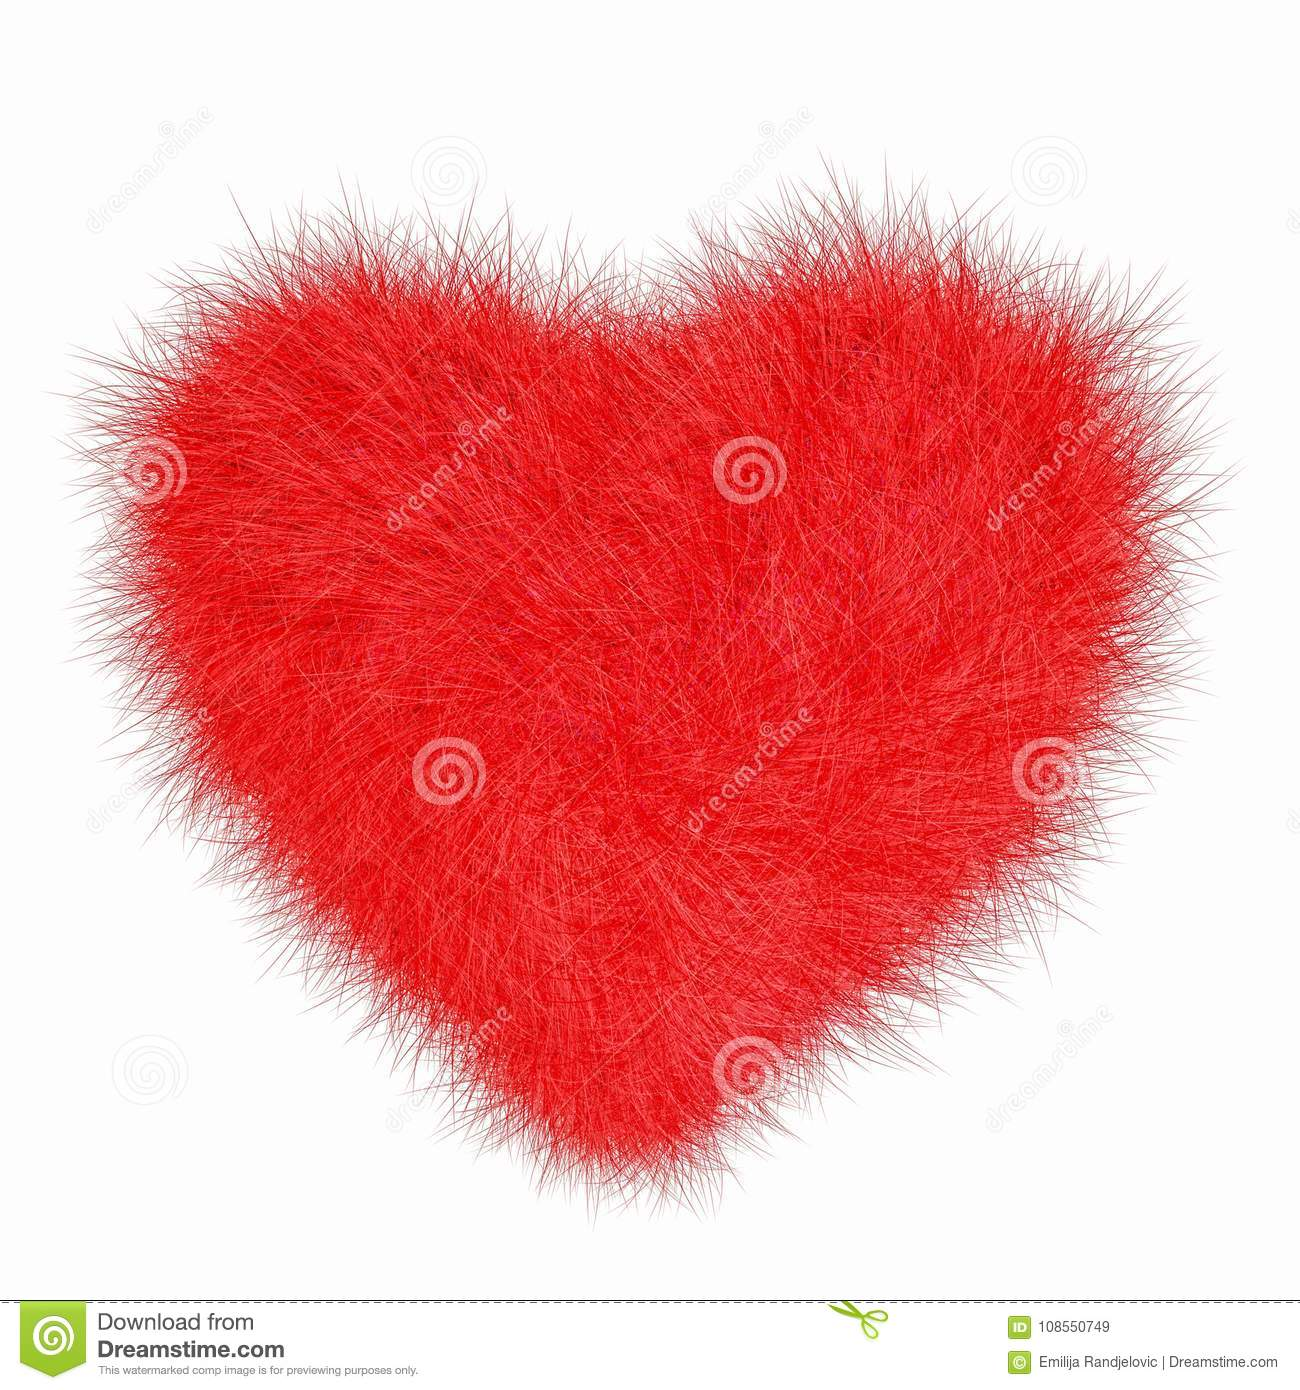 fecd32a7c64 Heart Puffy Red Stock Illustrations – 64 Heart Puffy Red Stock  Illustrations